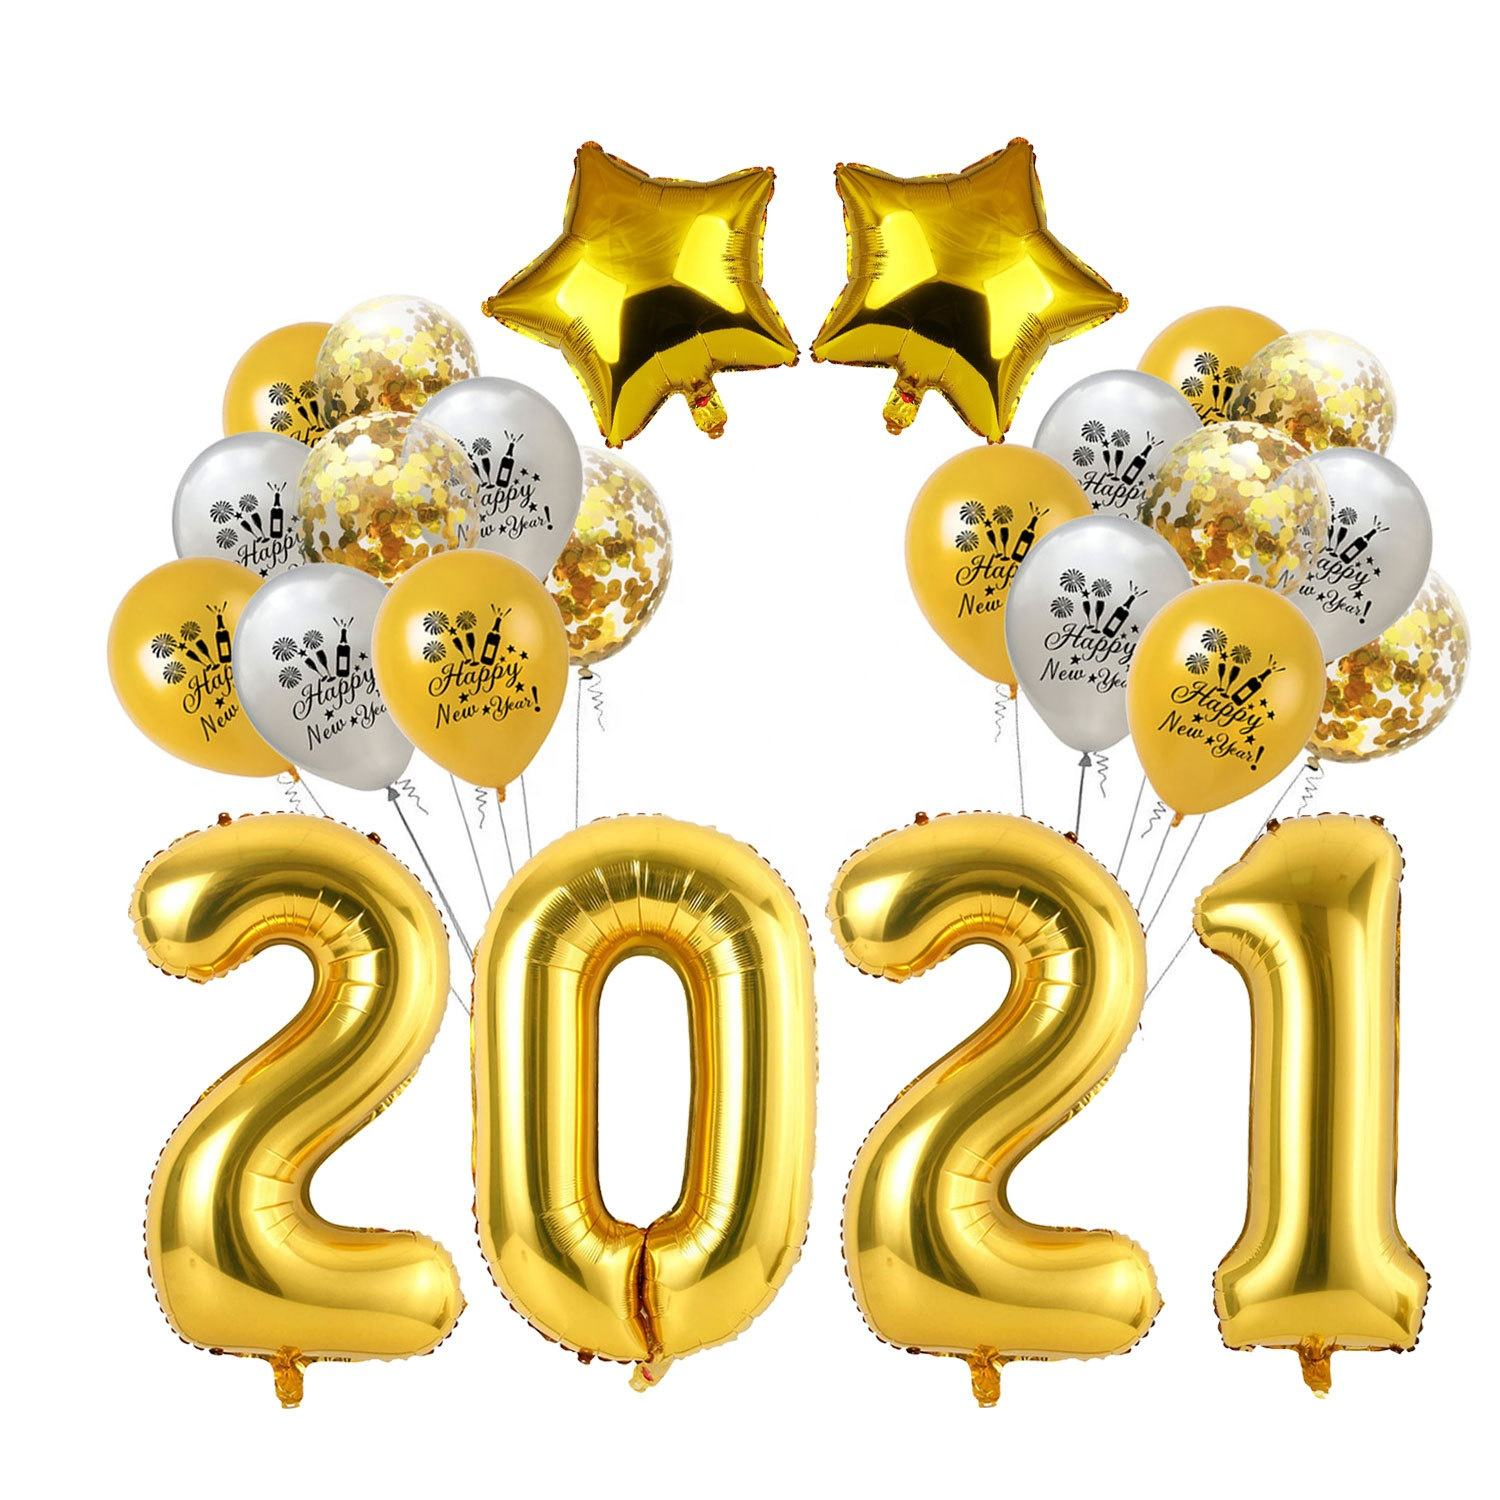 Photo Prop Gift Supplies Eve Banner Set Kit Decoration Latex Foil House Decor Backdrop Golden 2021 Happy New Year Party Balloon